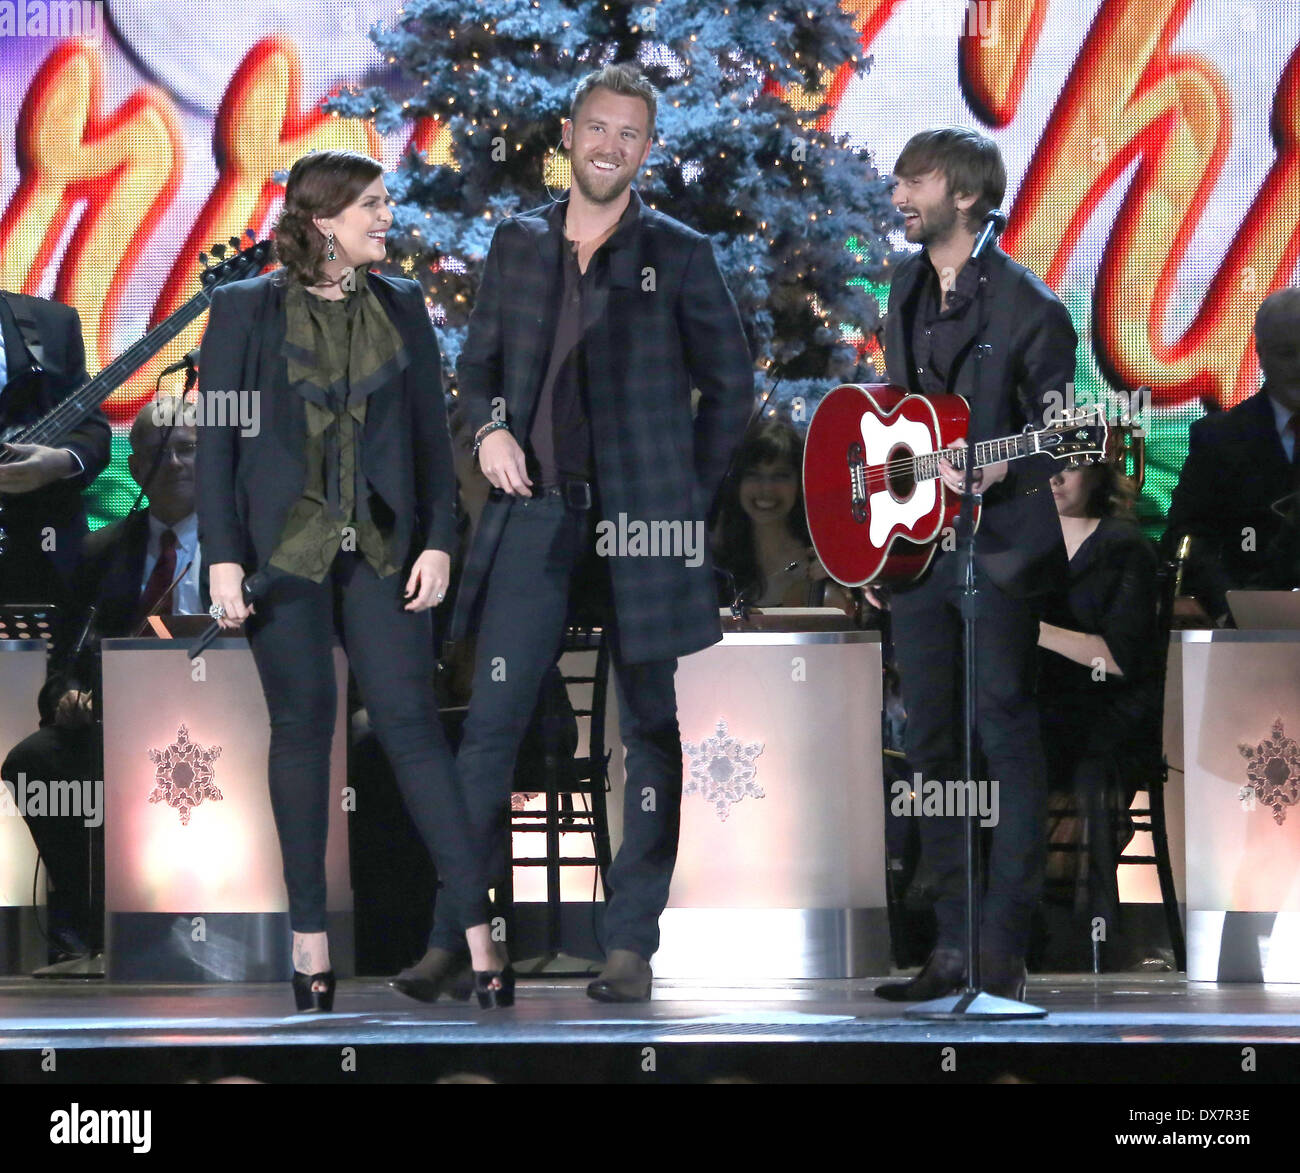 lady antebellum performing at the 2012cma country christmas at bridgestone arena in nashville featuring lady